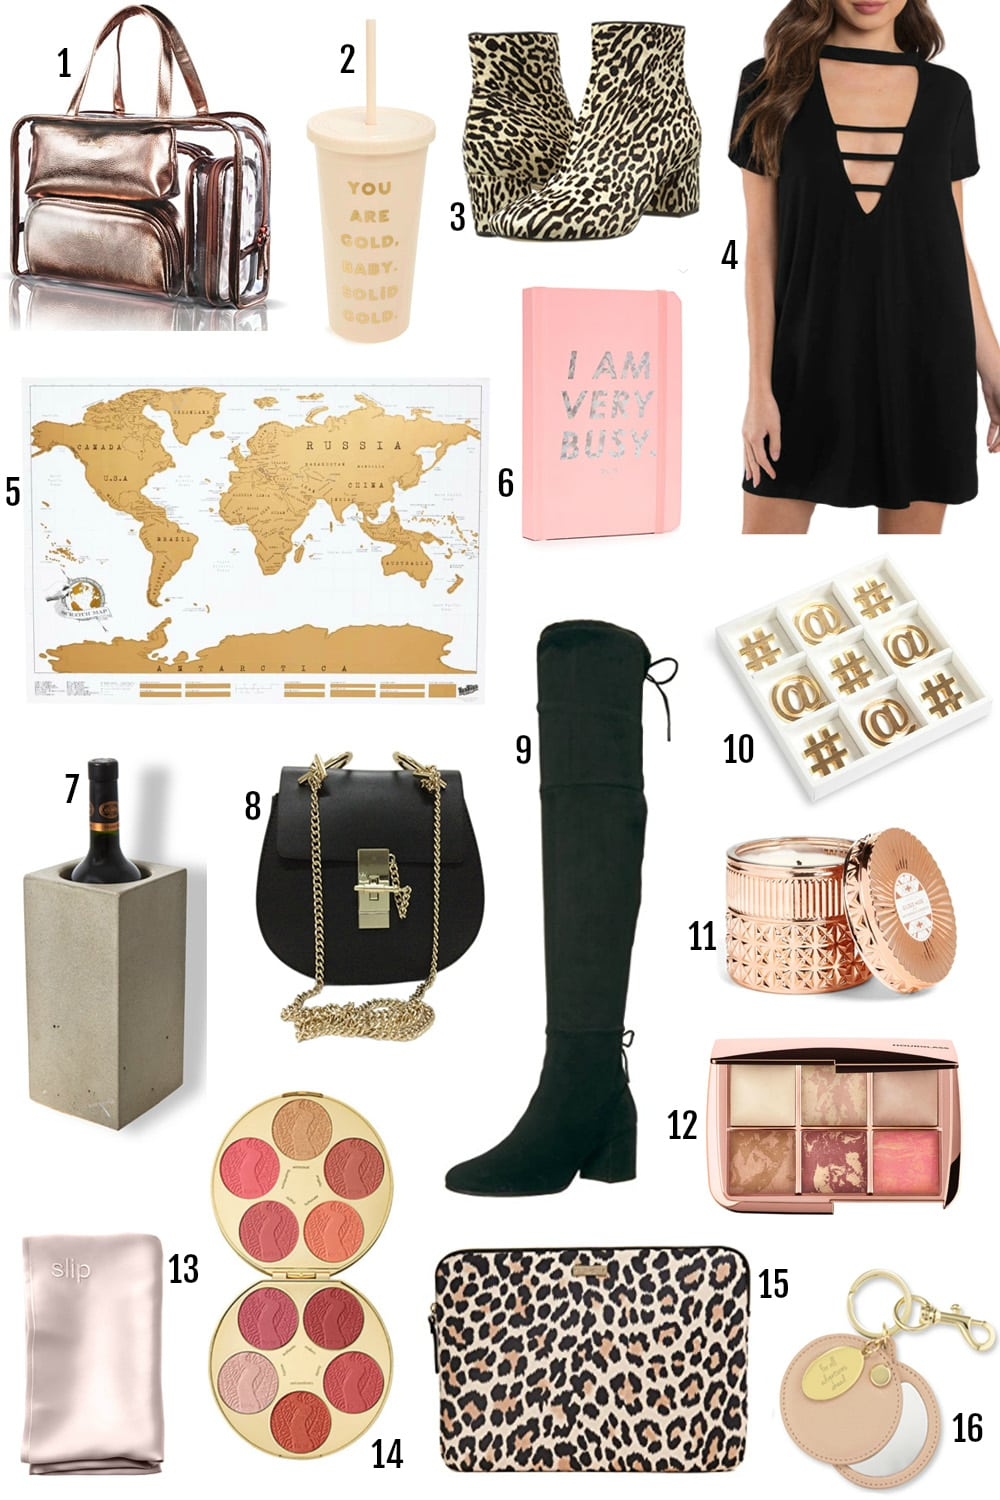 Mash Elle lifestyle blogger shares best gifts for her under $100 | gifts for the girl who has everything | best makeup gift sets | best travel gifts | candles, designer bags, over the knee boots, stationary